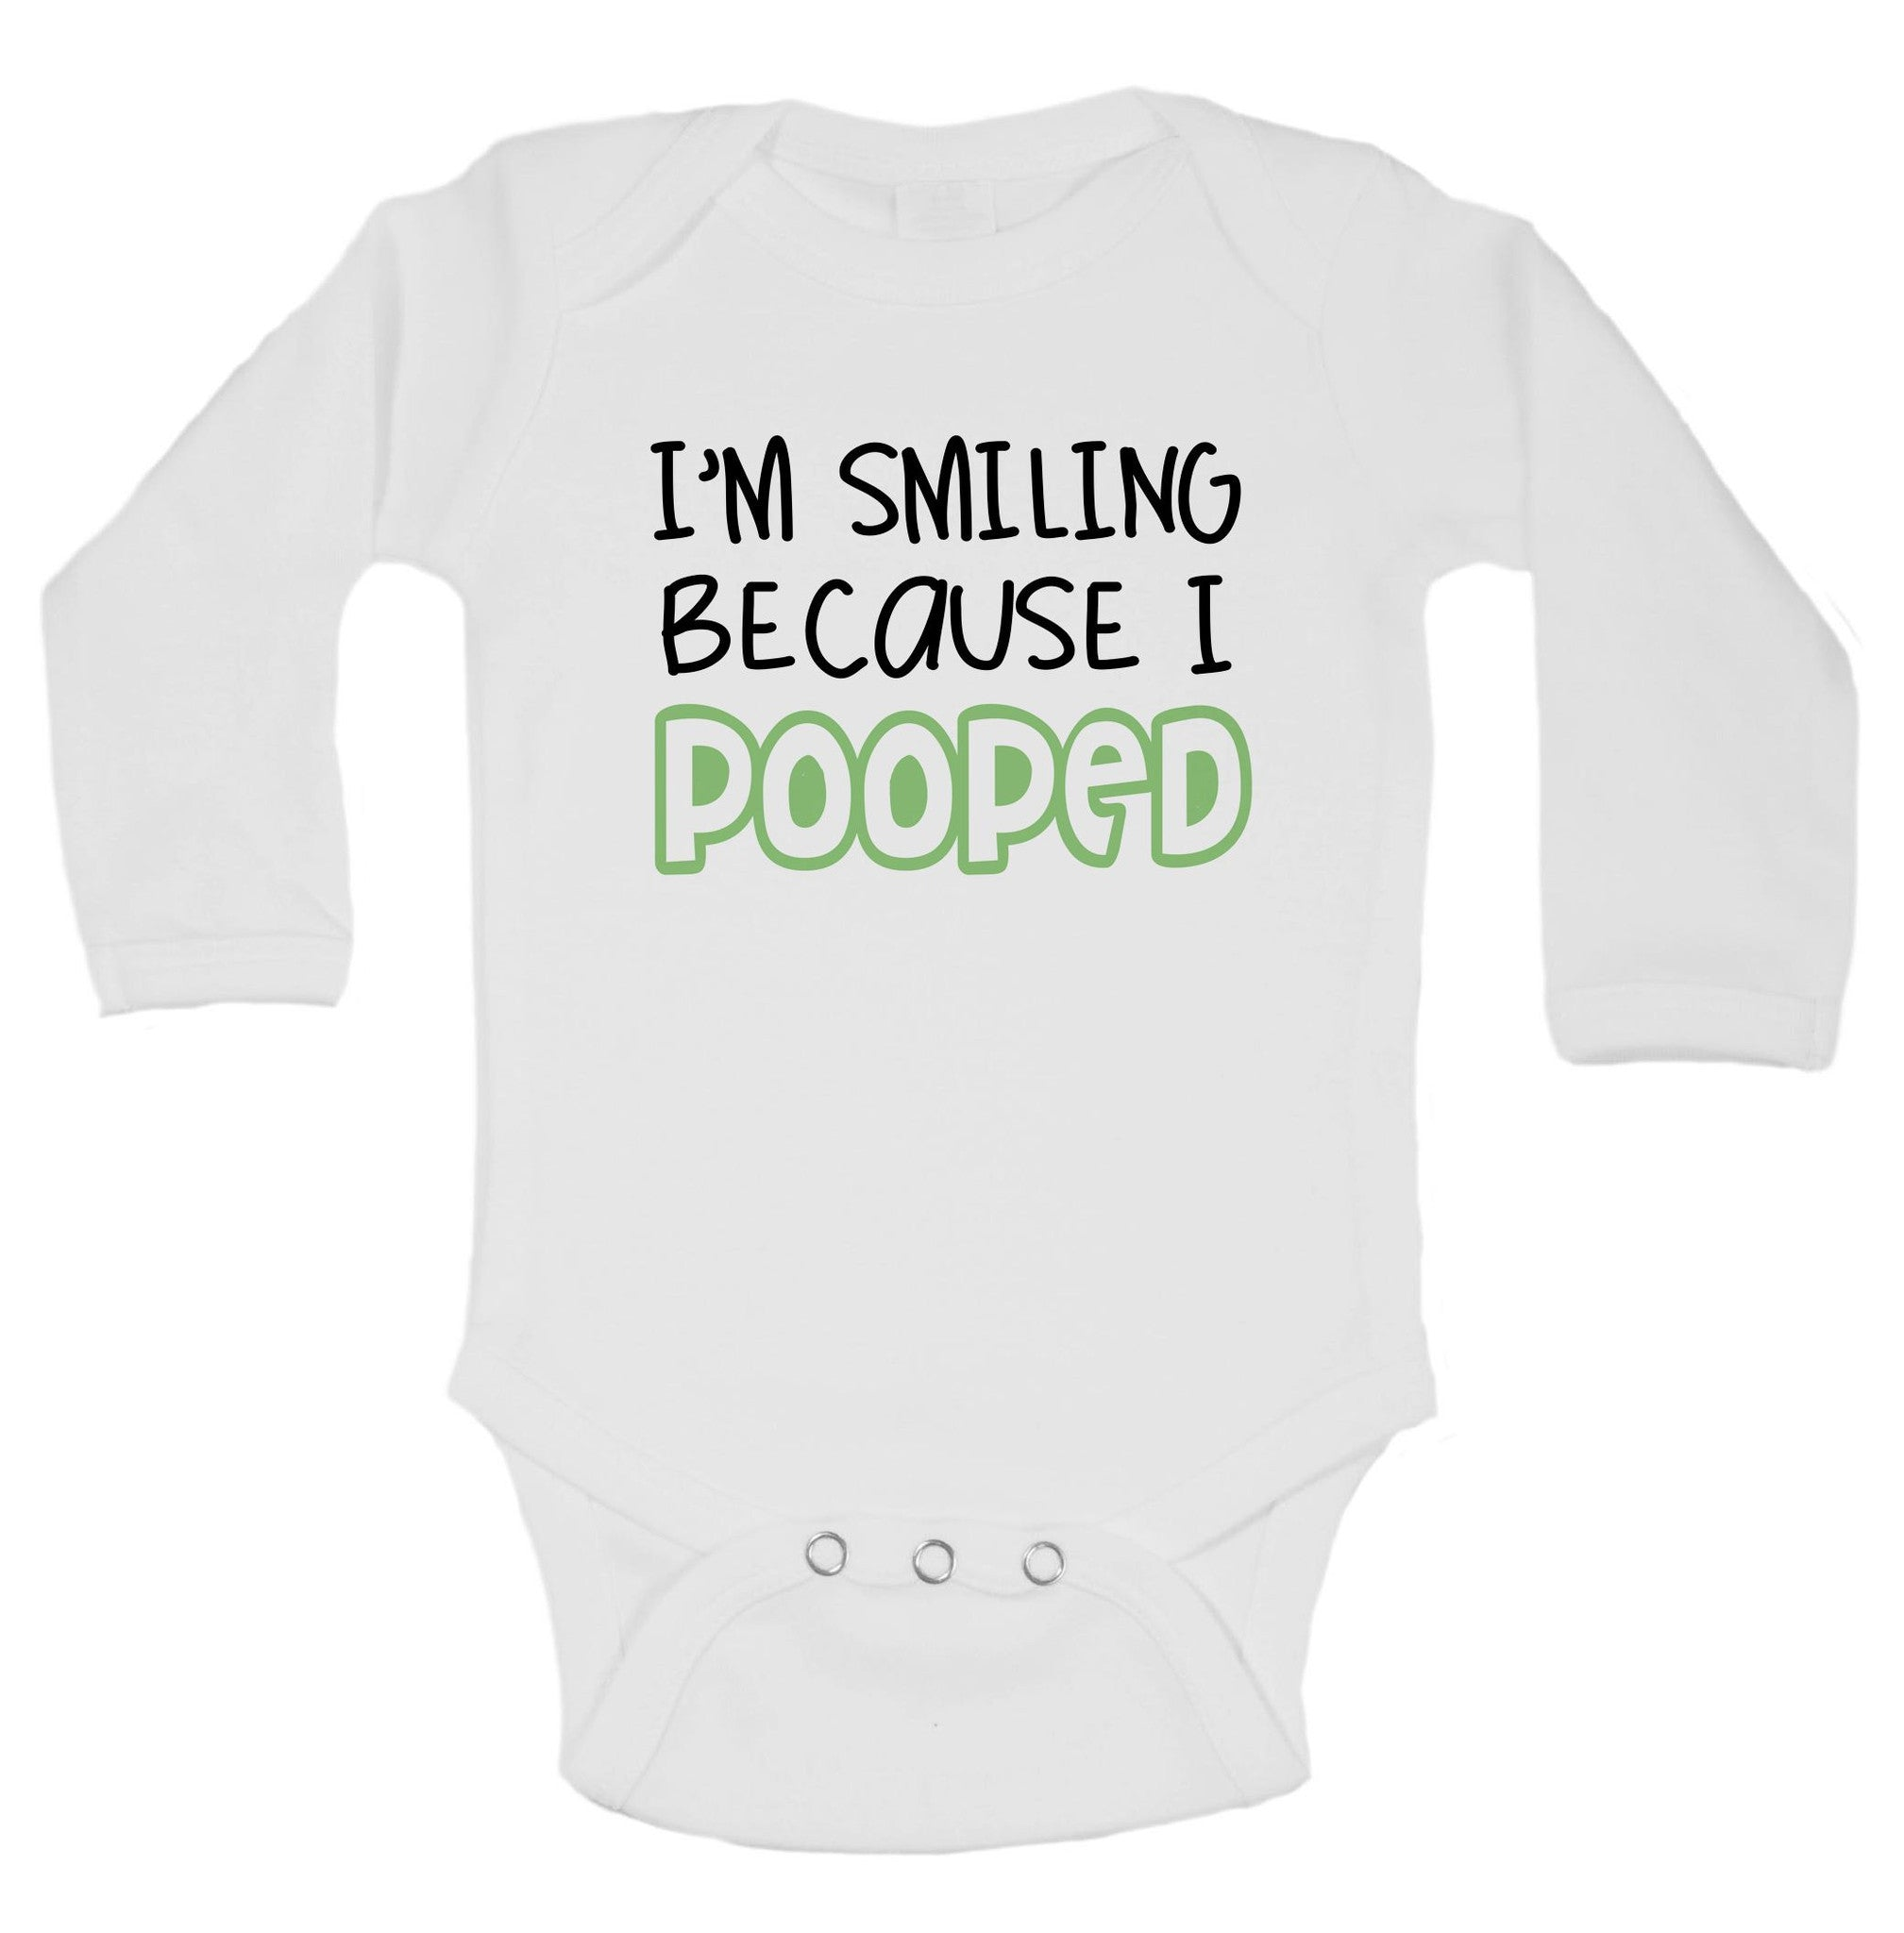 I'm Smiling Because I Pooped Funny Kids Onesie - B32 - Funny Shirts Tank Tops Burnouts and Triblends  - 1